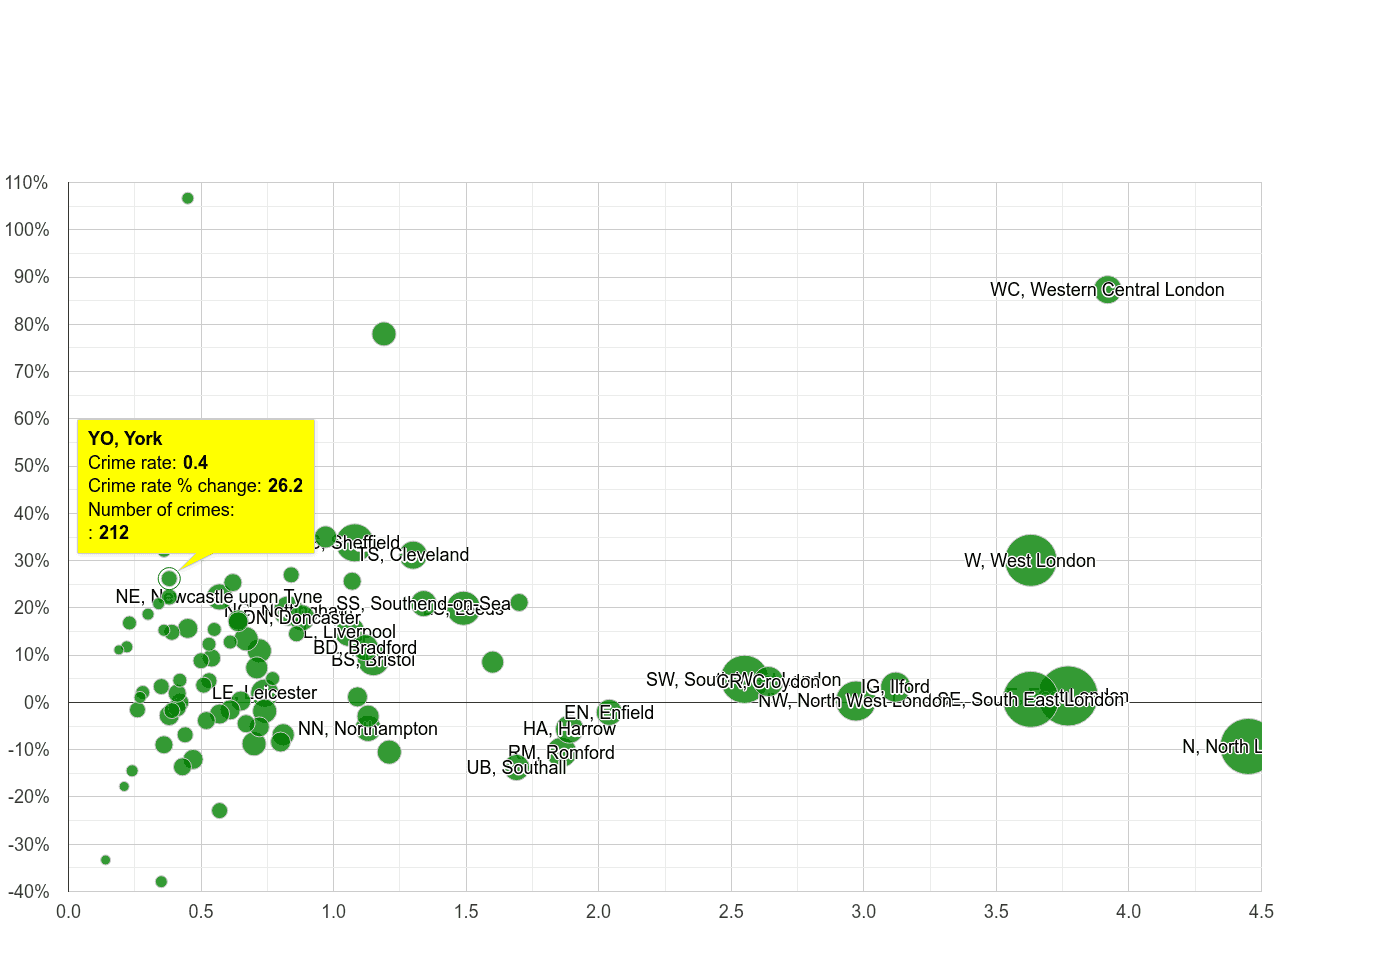 York robbery crime rate compared to other areas